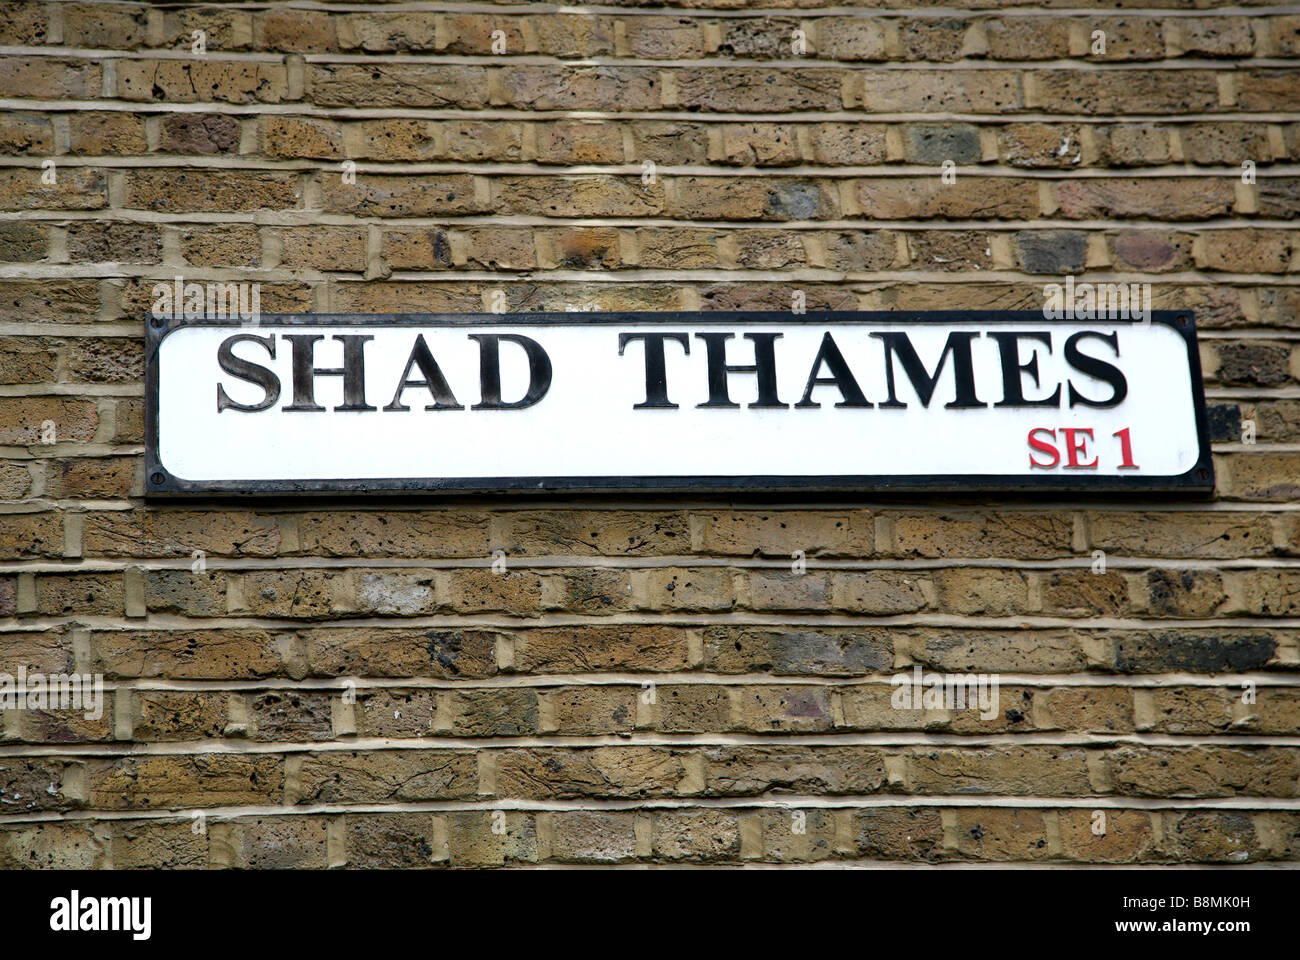 Shad Thames street sign, London - Stock Image